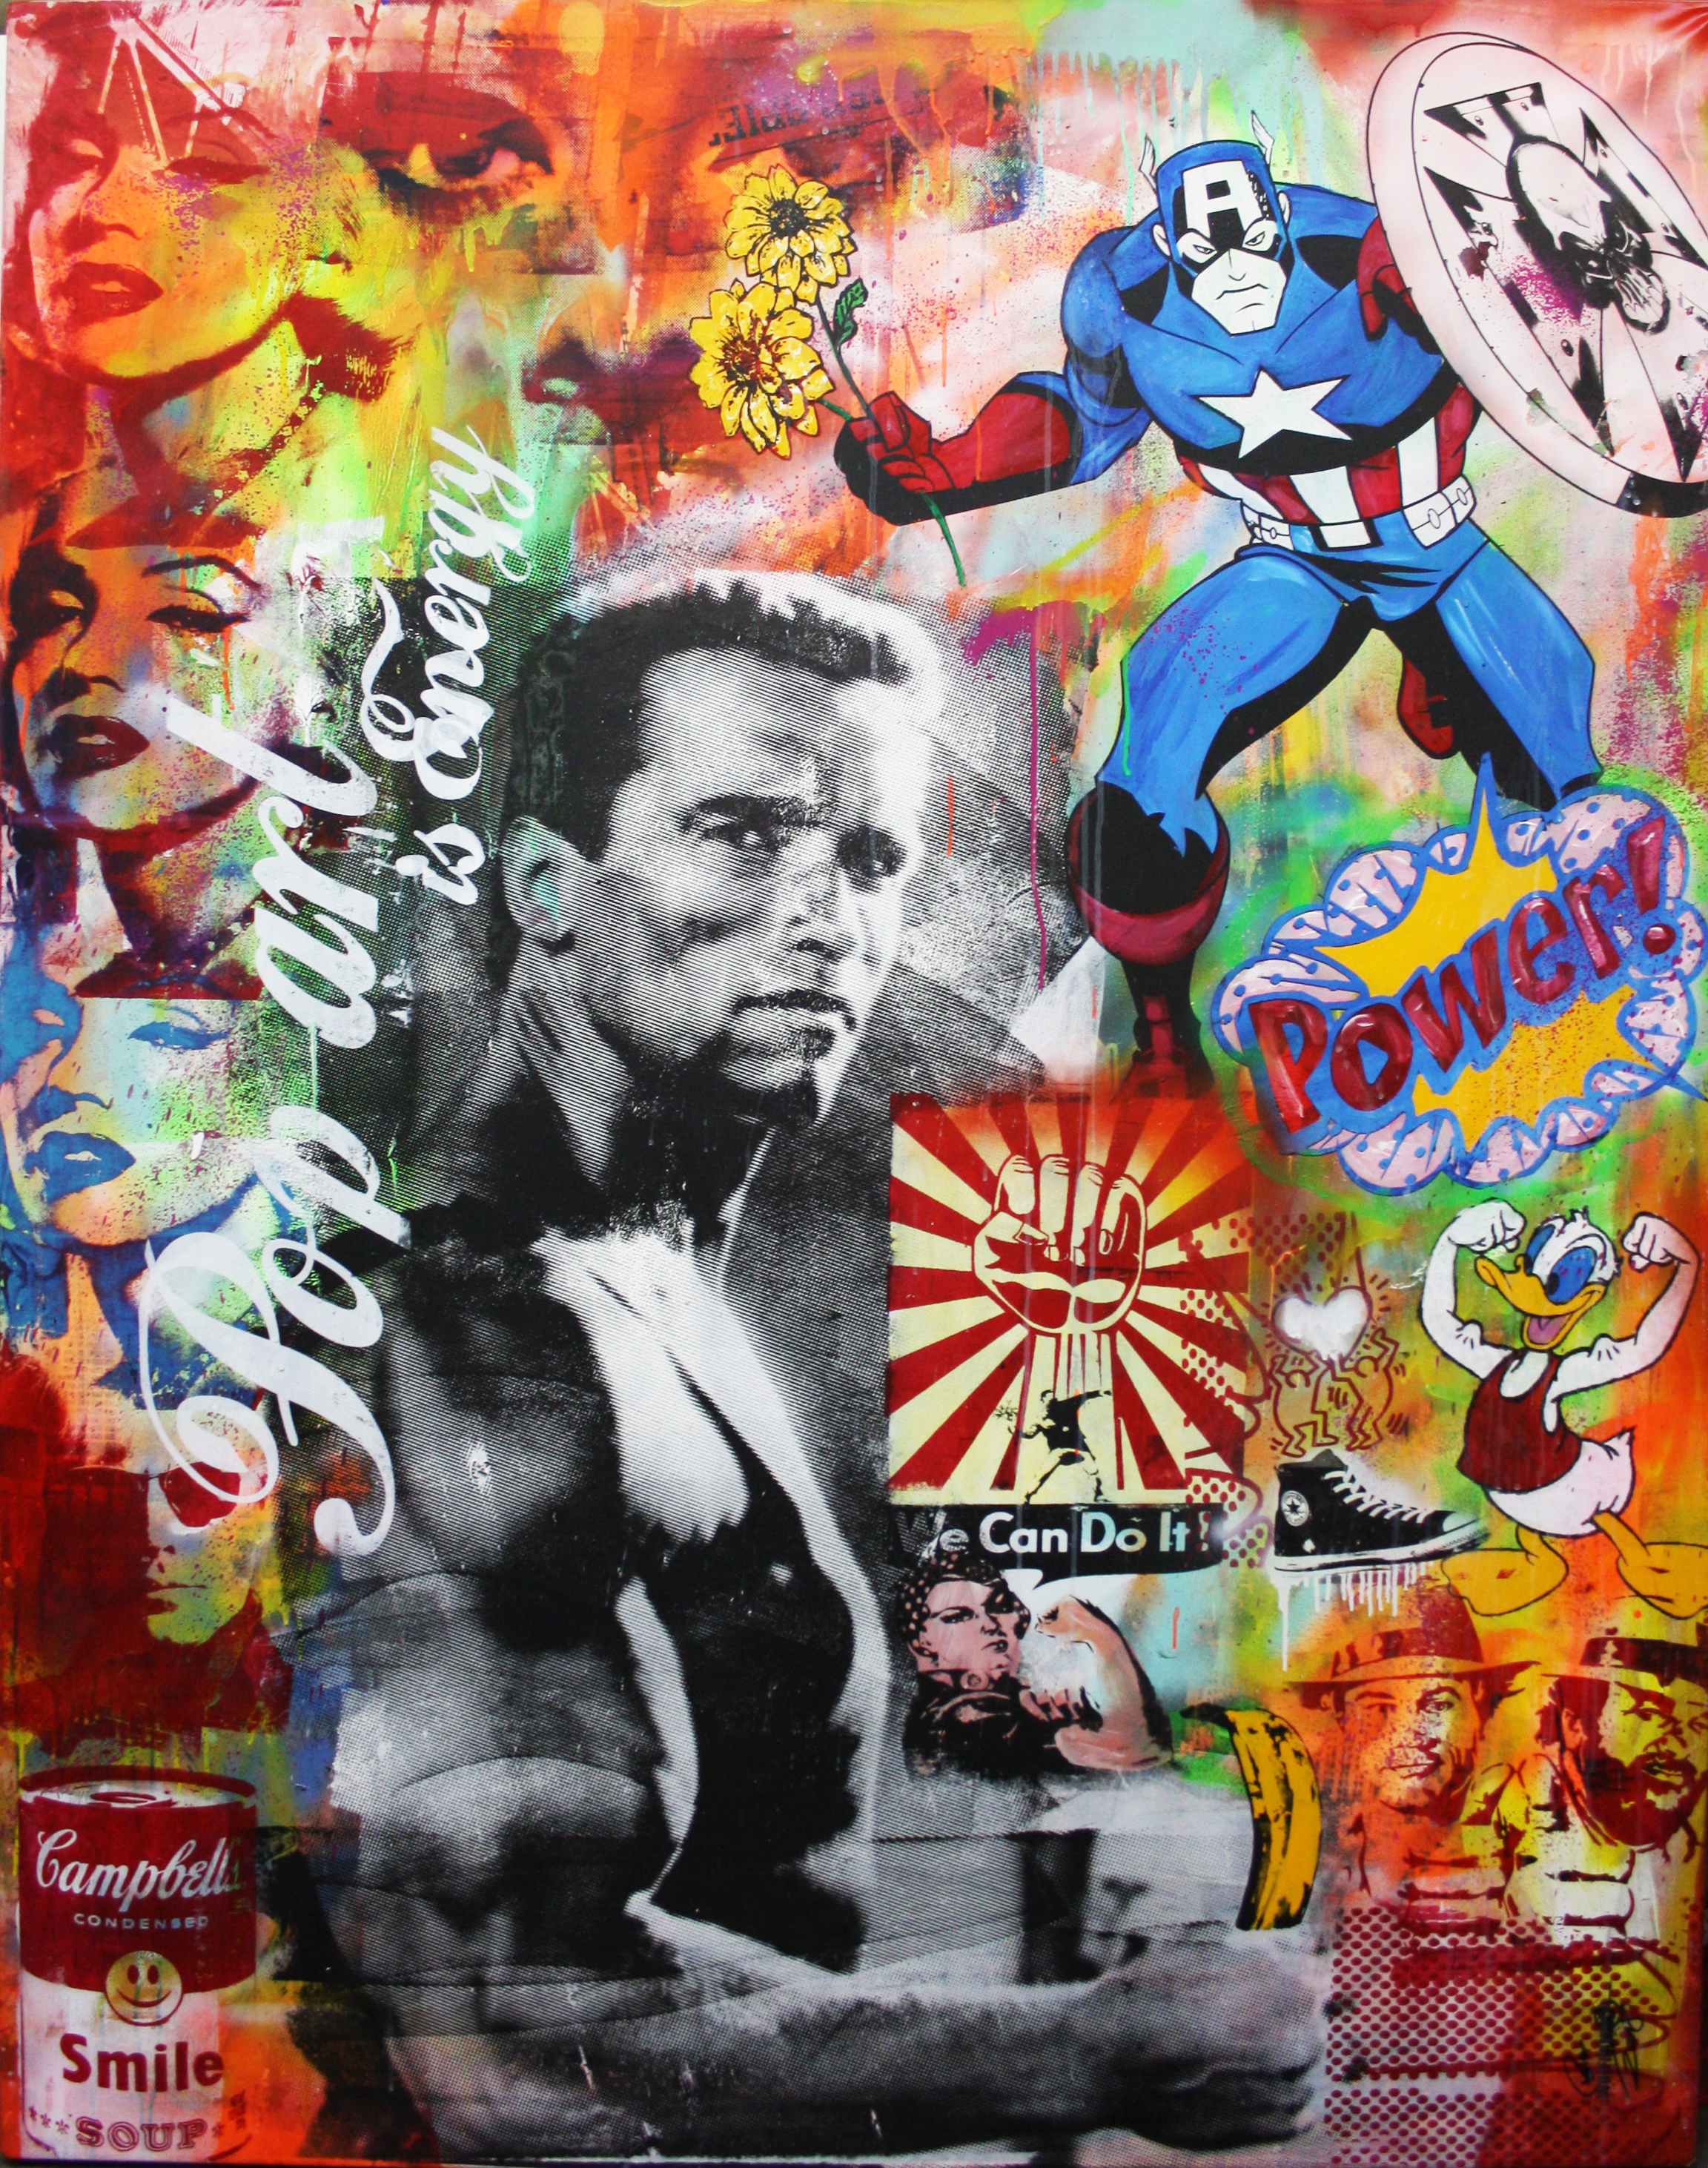 (POP ART IS ENERDY) LEINWAND 190 X 150.jpg